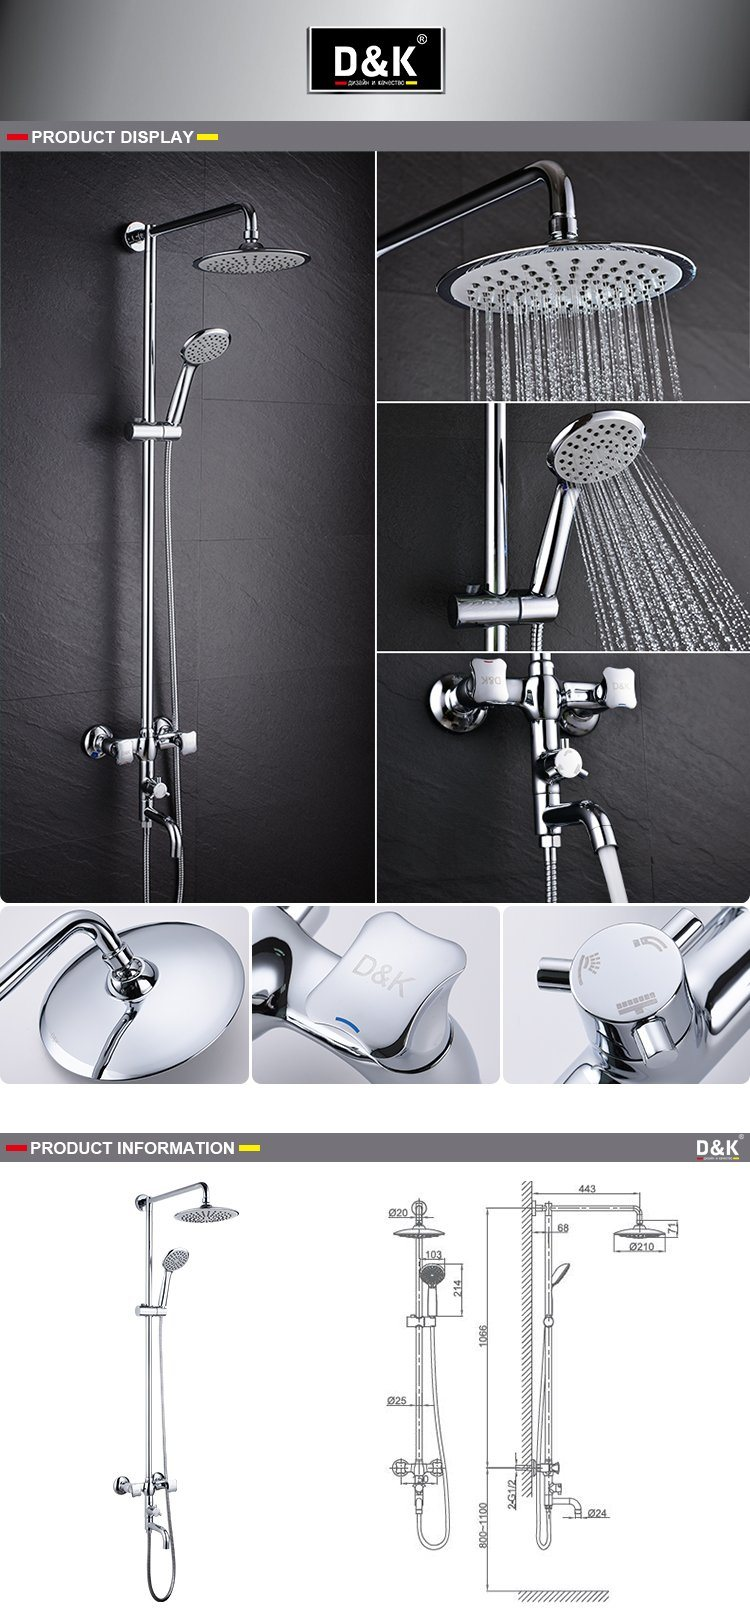 D&K Brass Bathroom Rain Shower Mixer Shower Faucet Shower Set